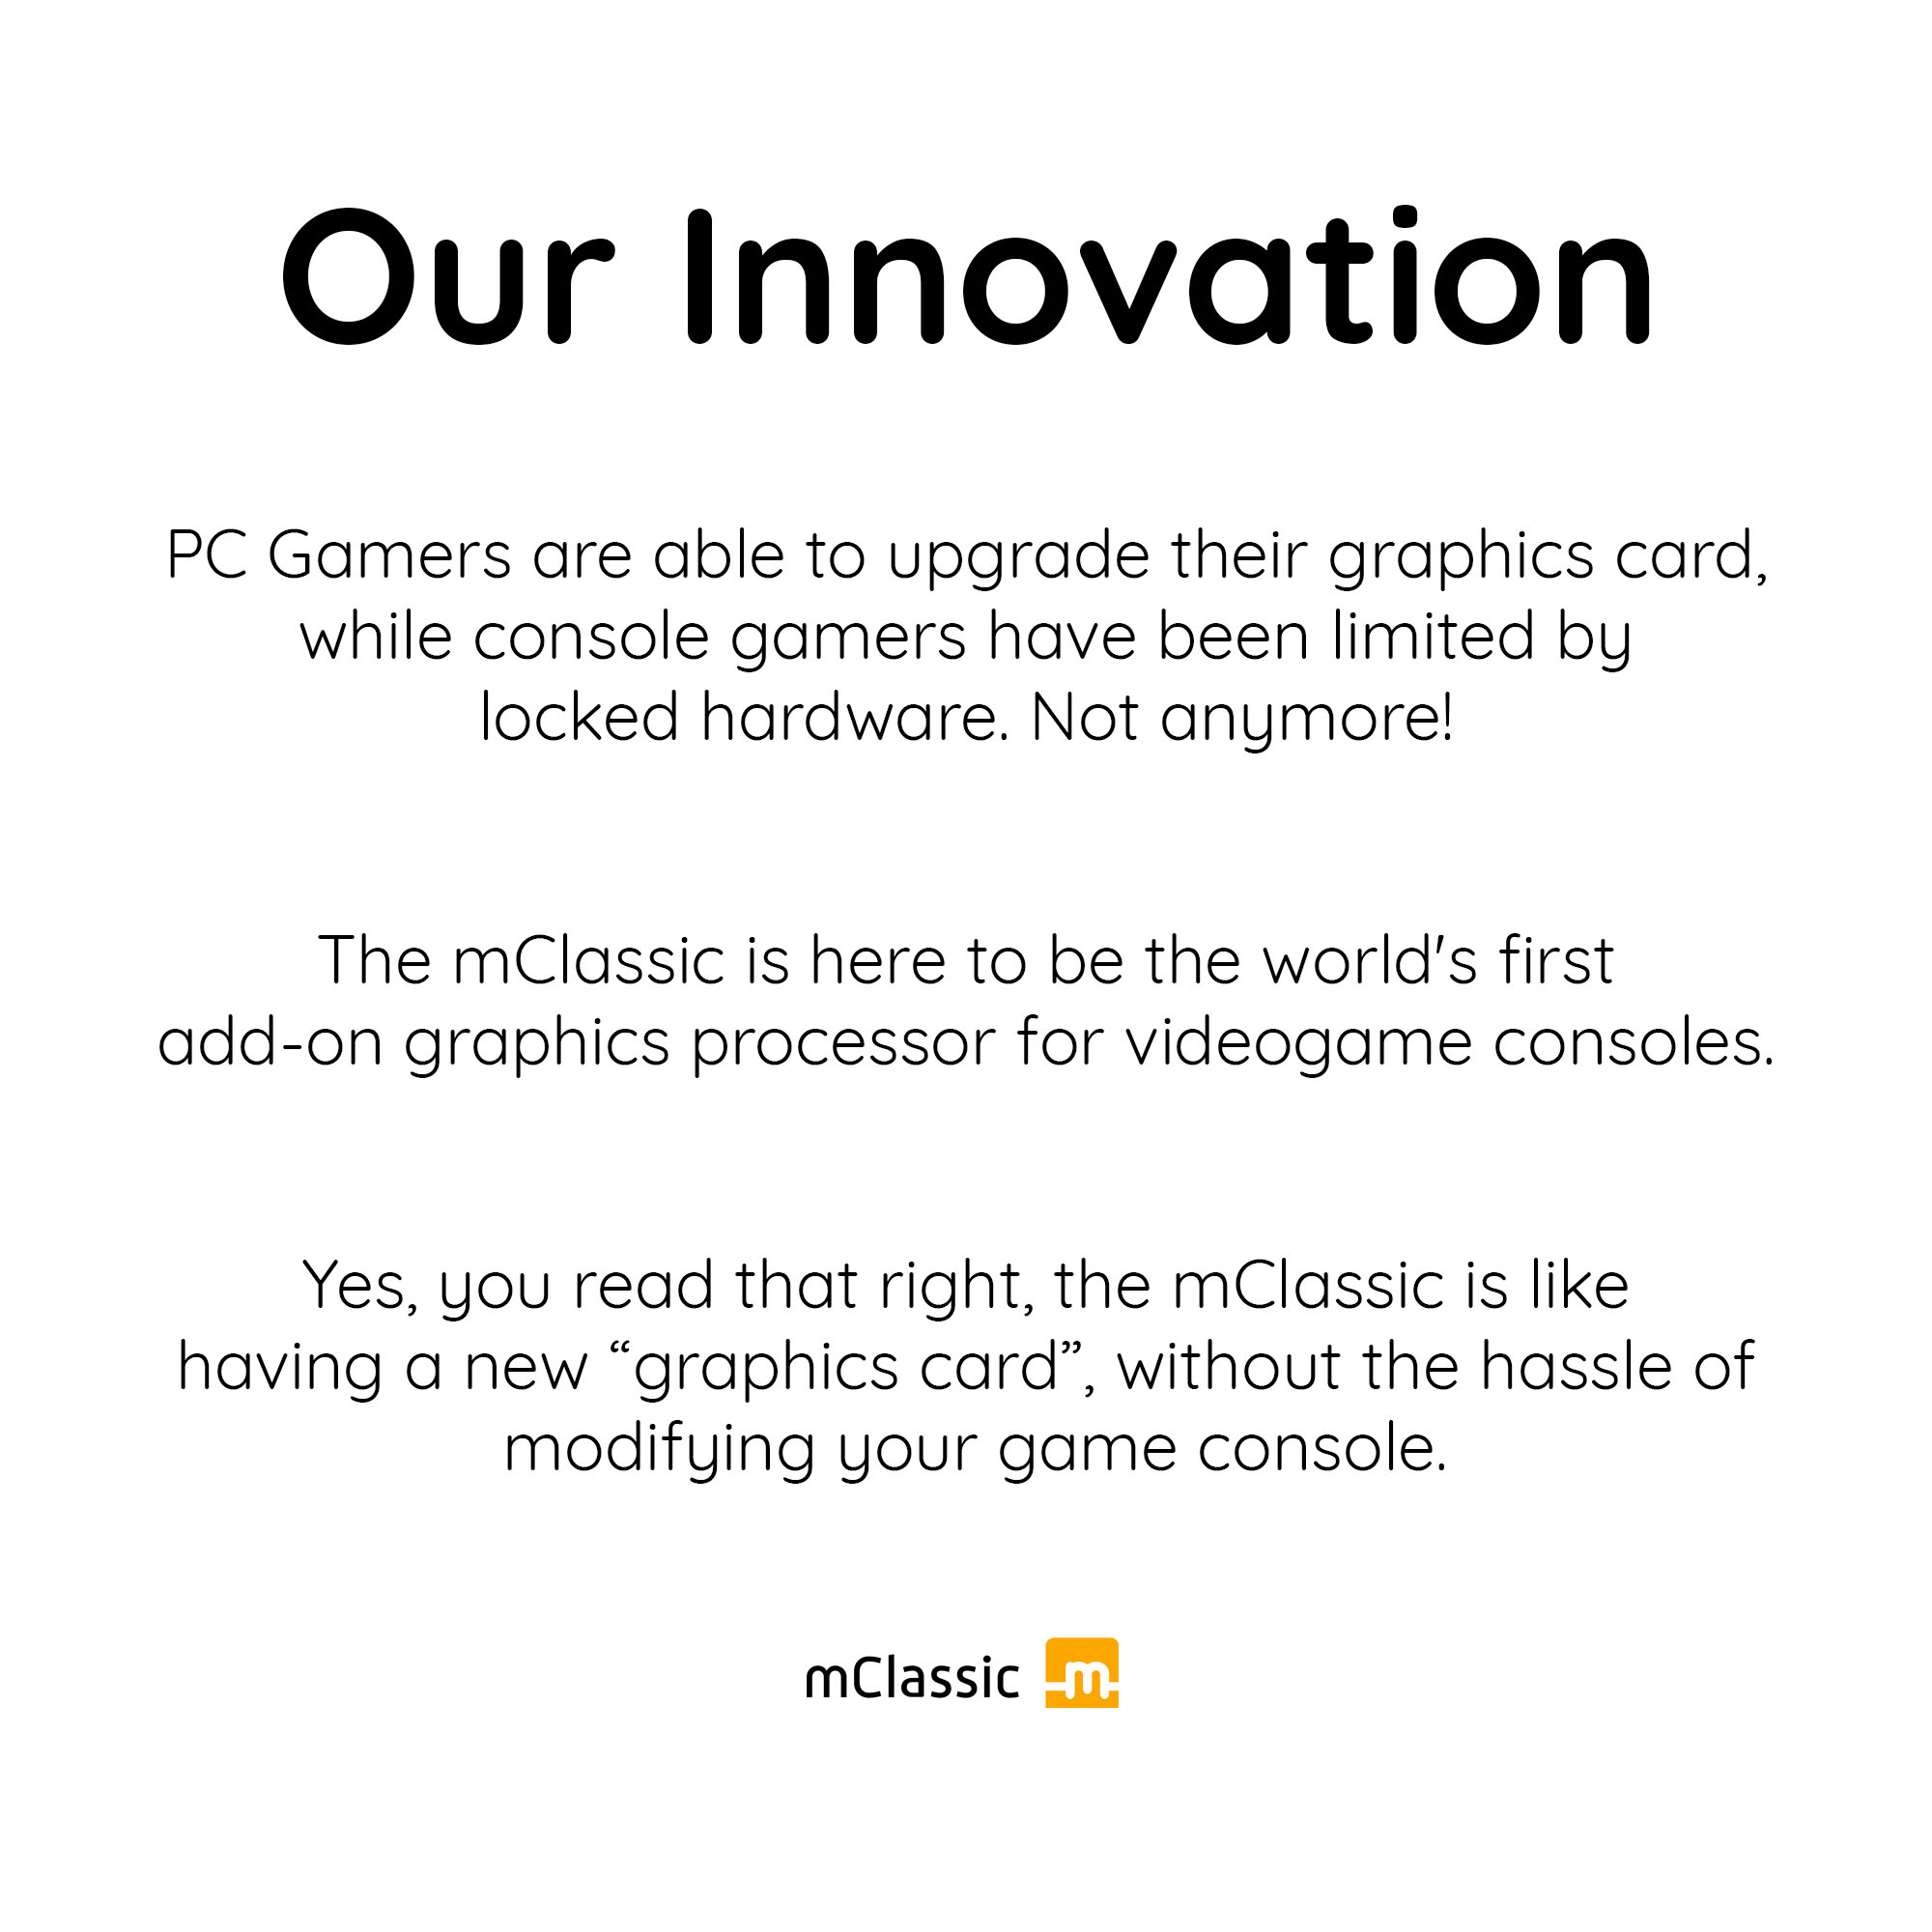 PC Gamers are able to upgrade their graphics card, while console gamers have been limited by locked hardware. Not anymore! The mClassic is here to be the world's first add-on graphics processor for videogame consoles.